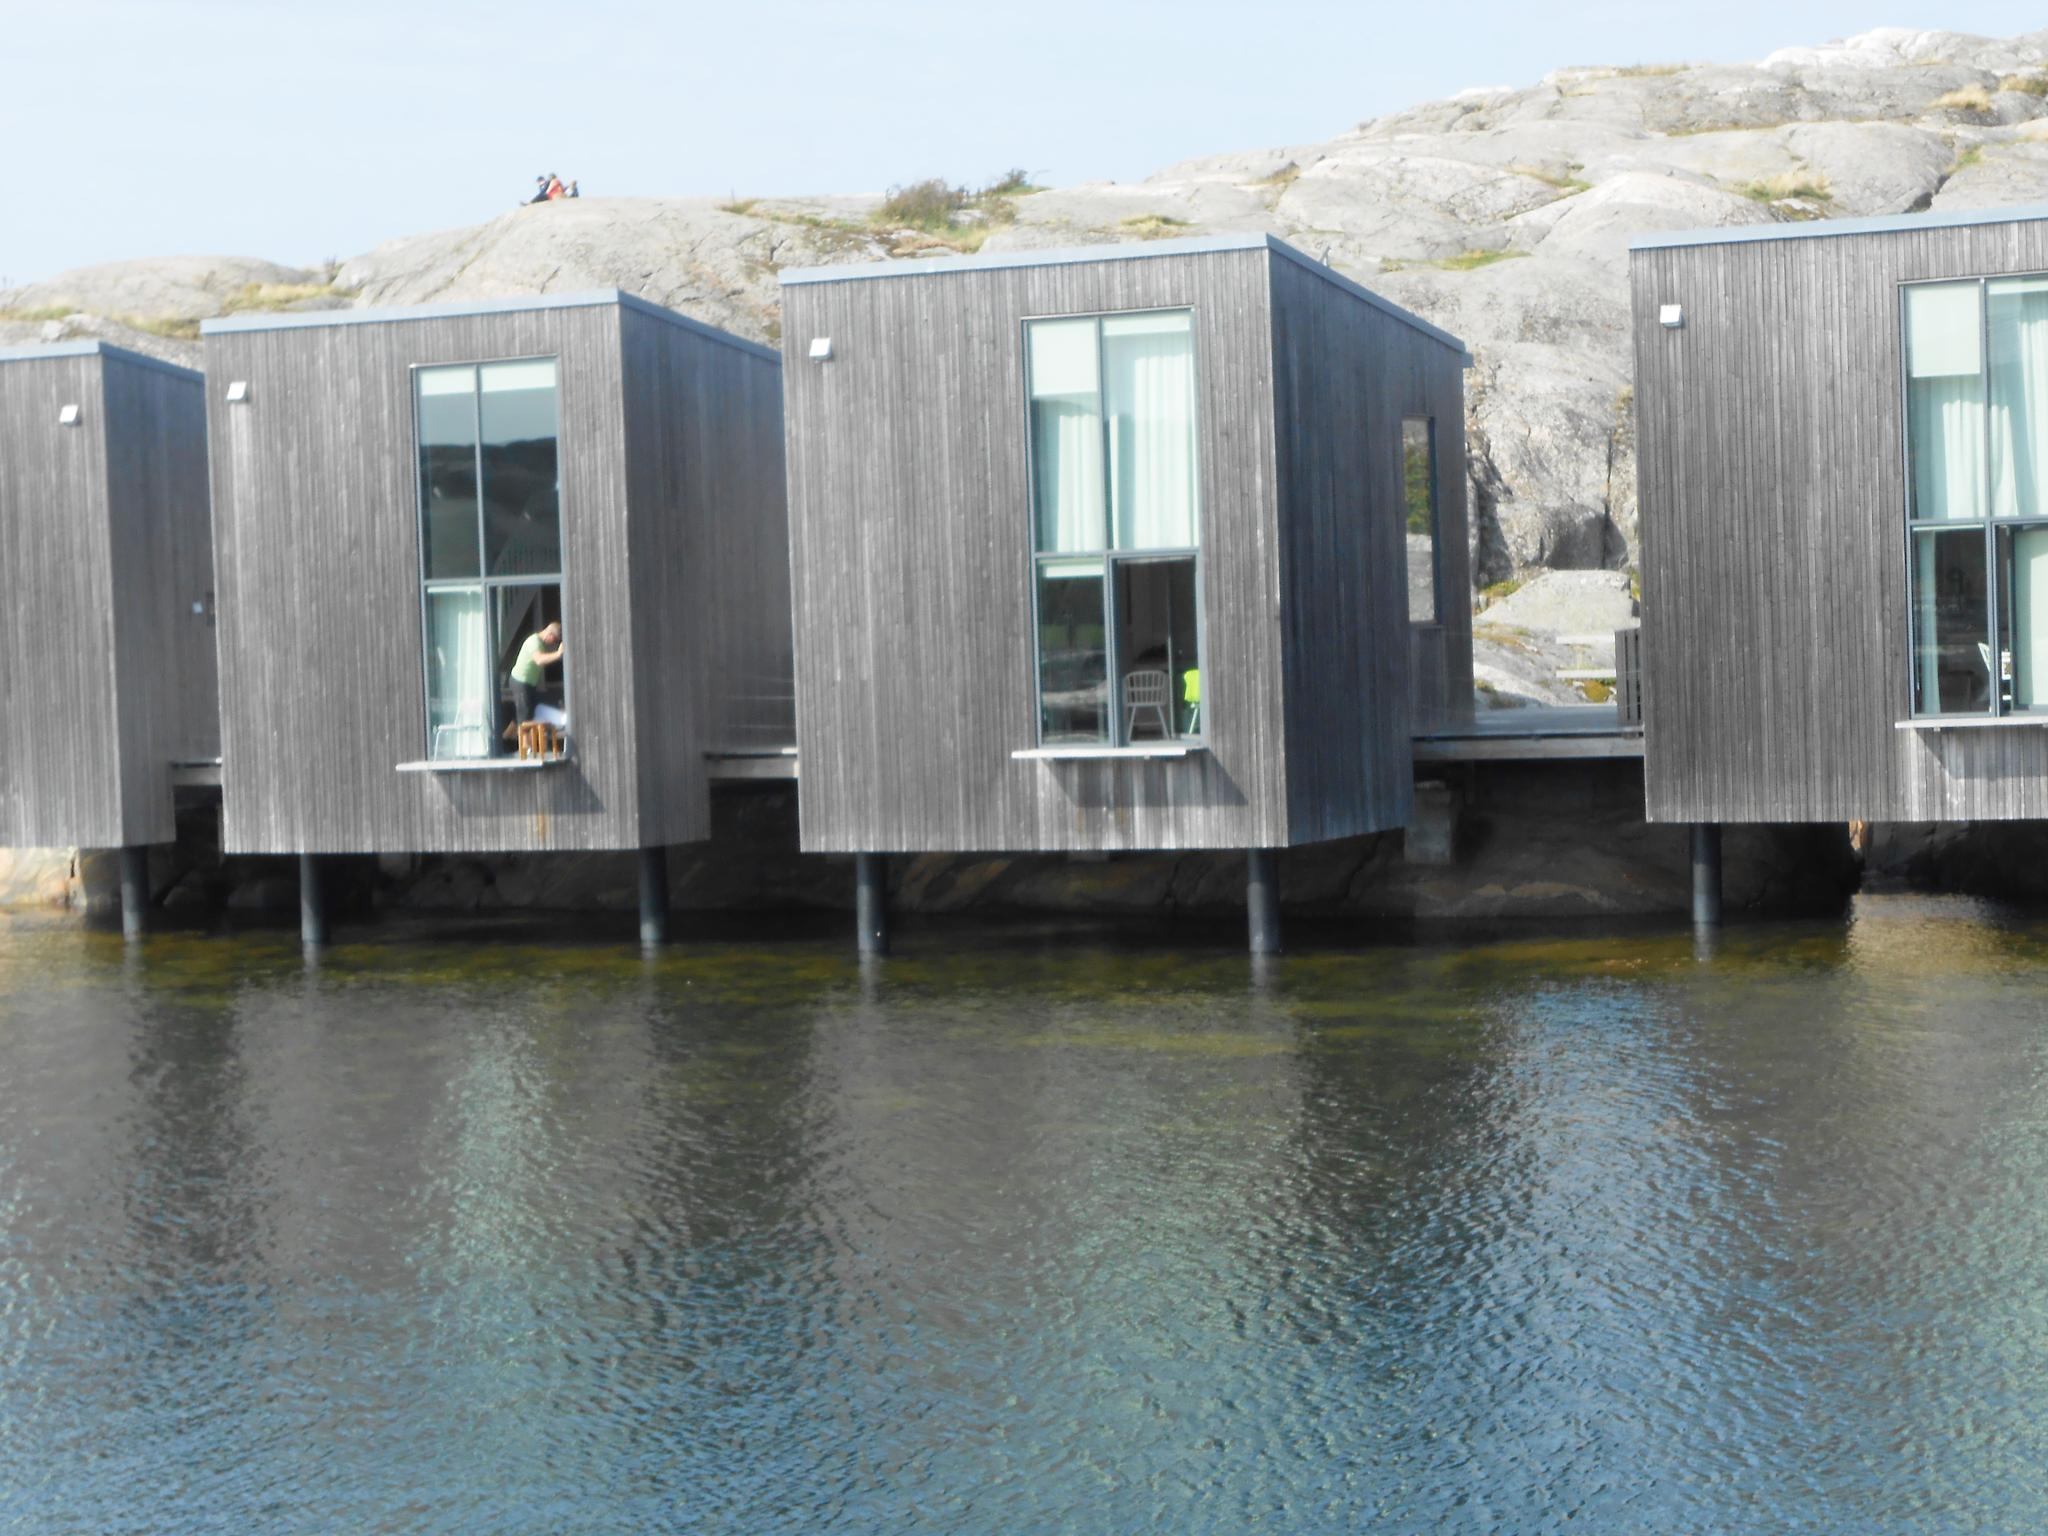 House on water by Marina Hedberg